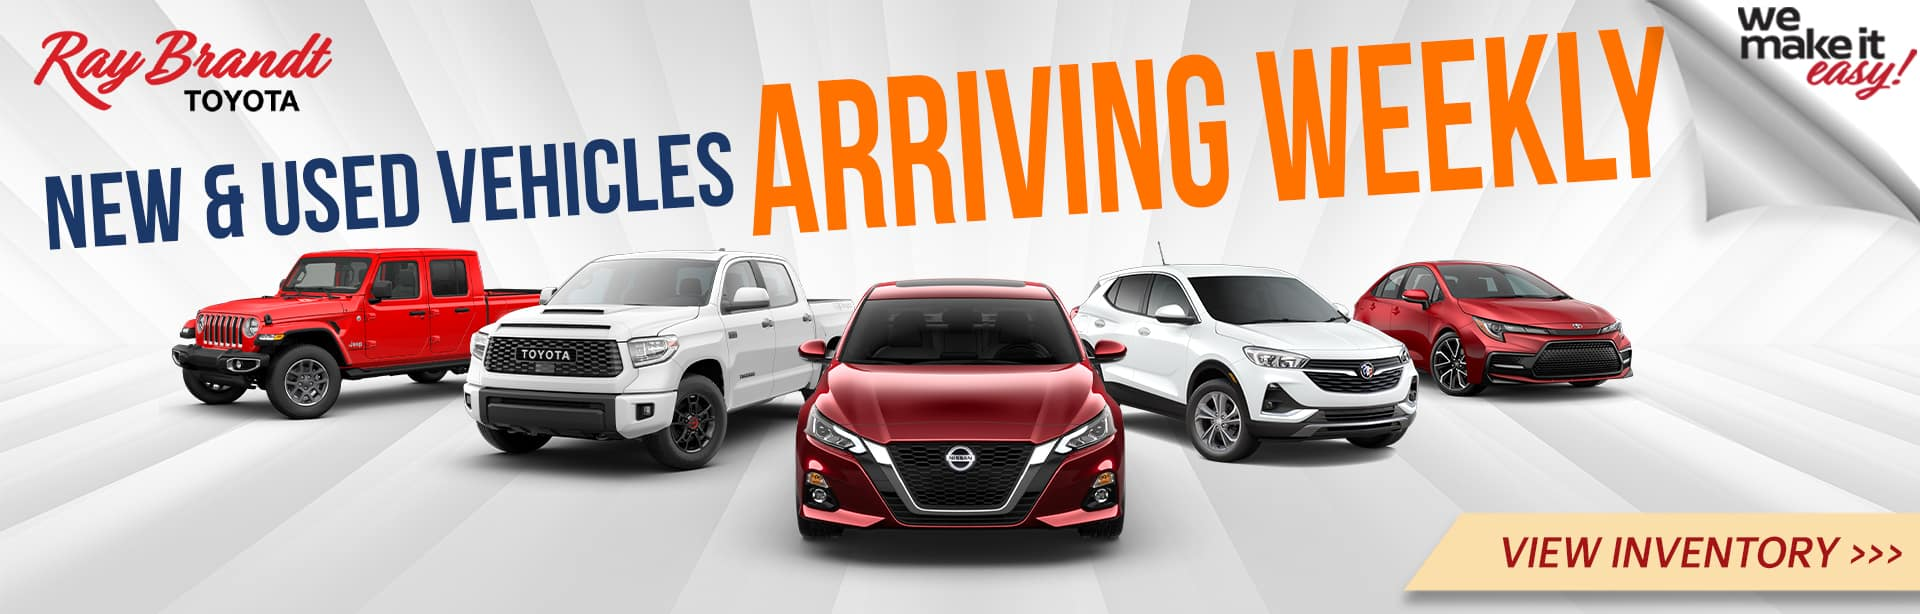 New Inventory Arriving Weekly at Ray Brandt Toyota